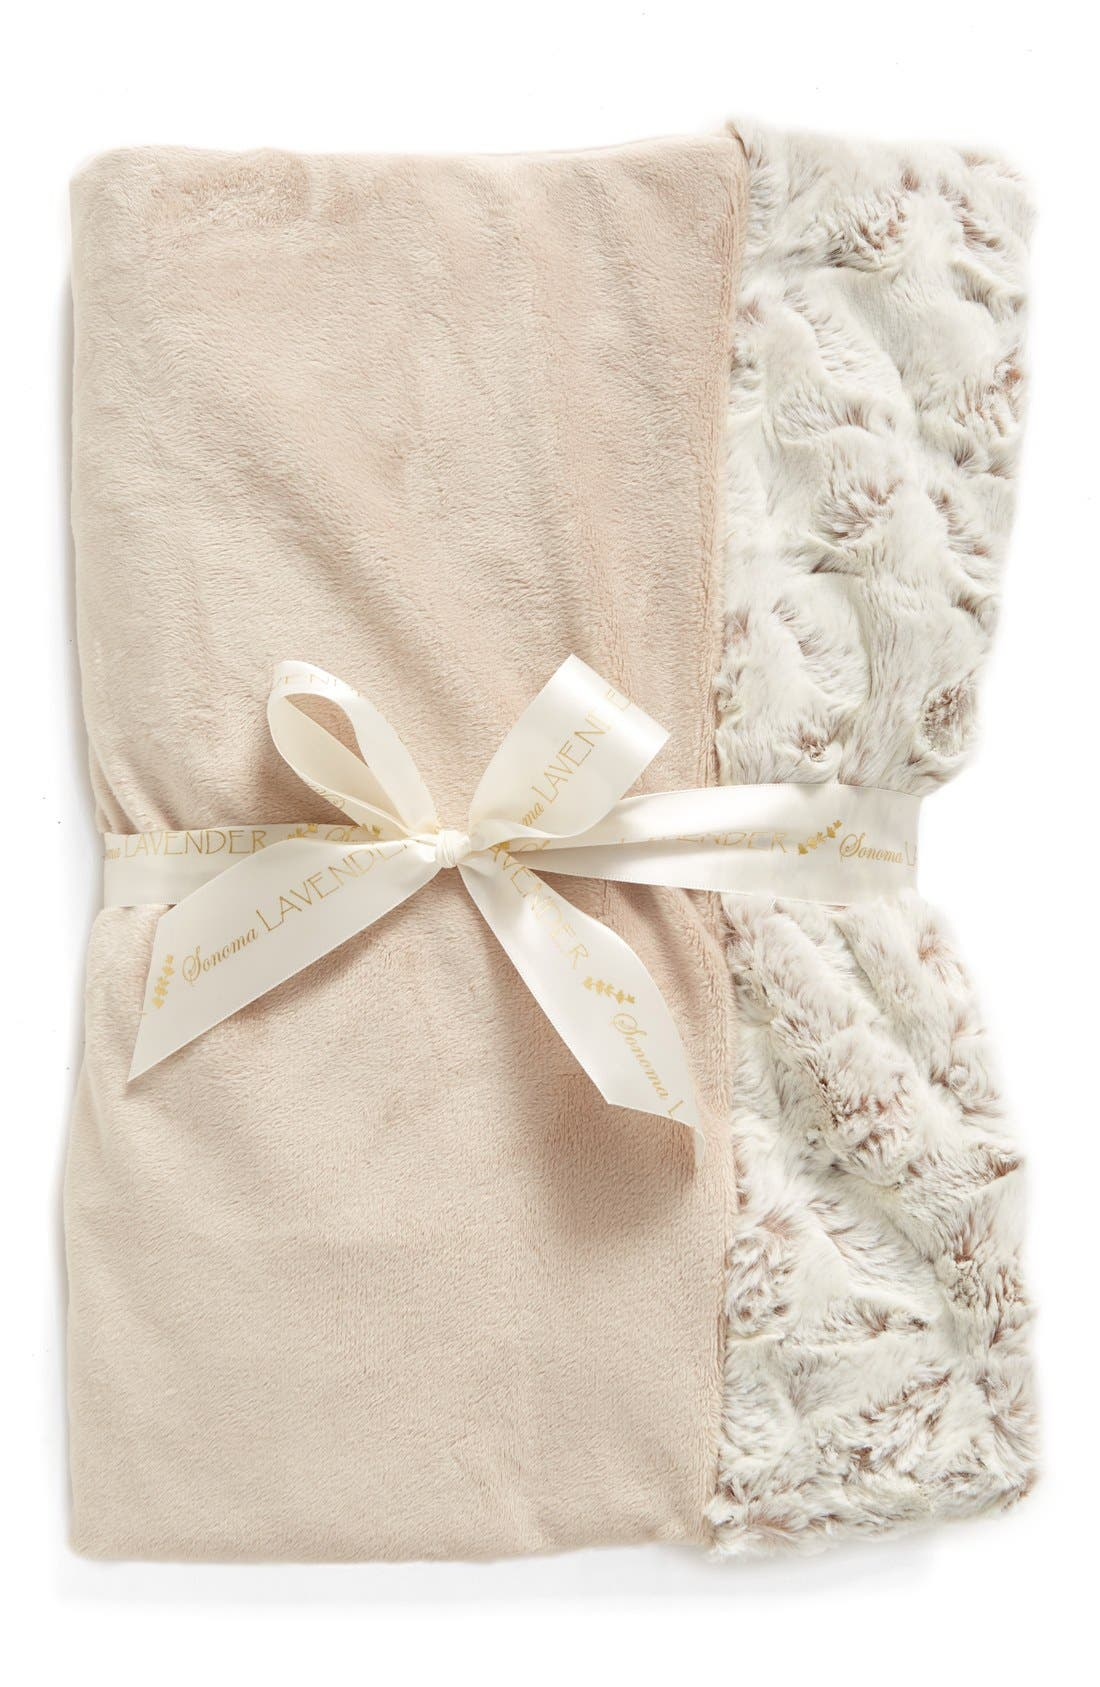 Alternate Image 1 Selected - Sonoma Lavender Taupe Luxe Blankie (Limited Edition) (Nordstrom Exclusive)